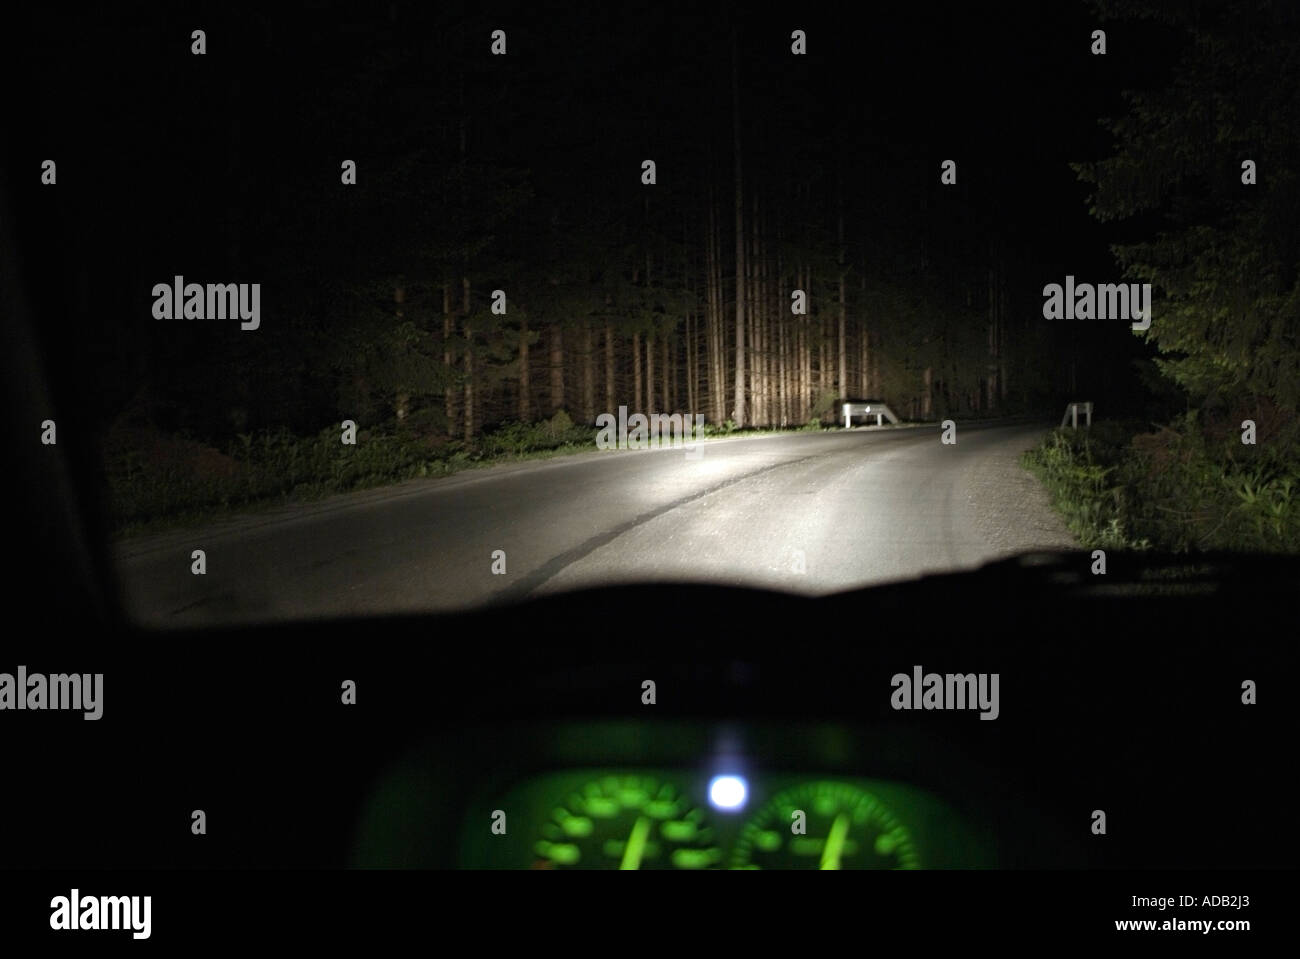 Drivers View from the Interior of a Car Driving at Night Along an Isolated Rural Road - Stock Image